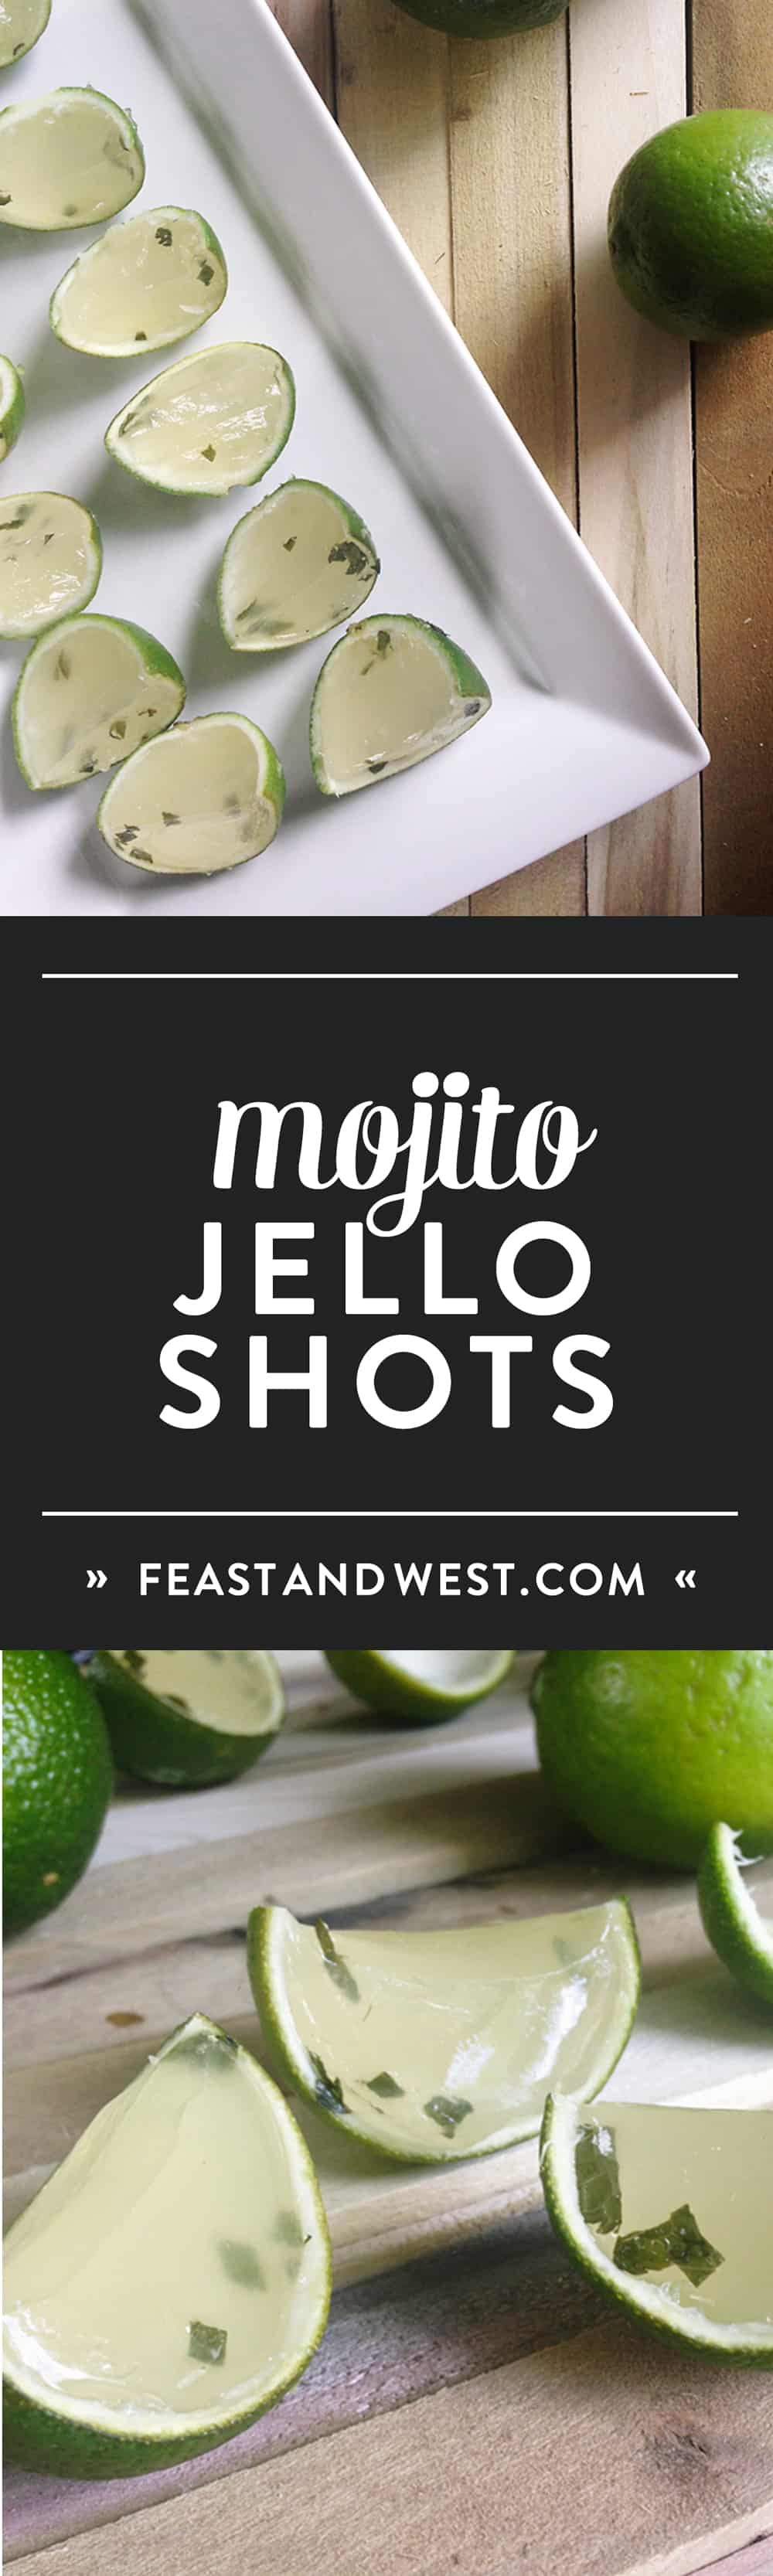 Mojito Jell-O Shots are the cutest way to enjoy the classic rum cocktail in bite-size form! Make a batch for a day by the pool or for a bachelorette party! Everyone will love them. (via feastandwest.com)